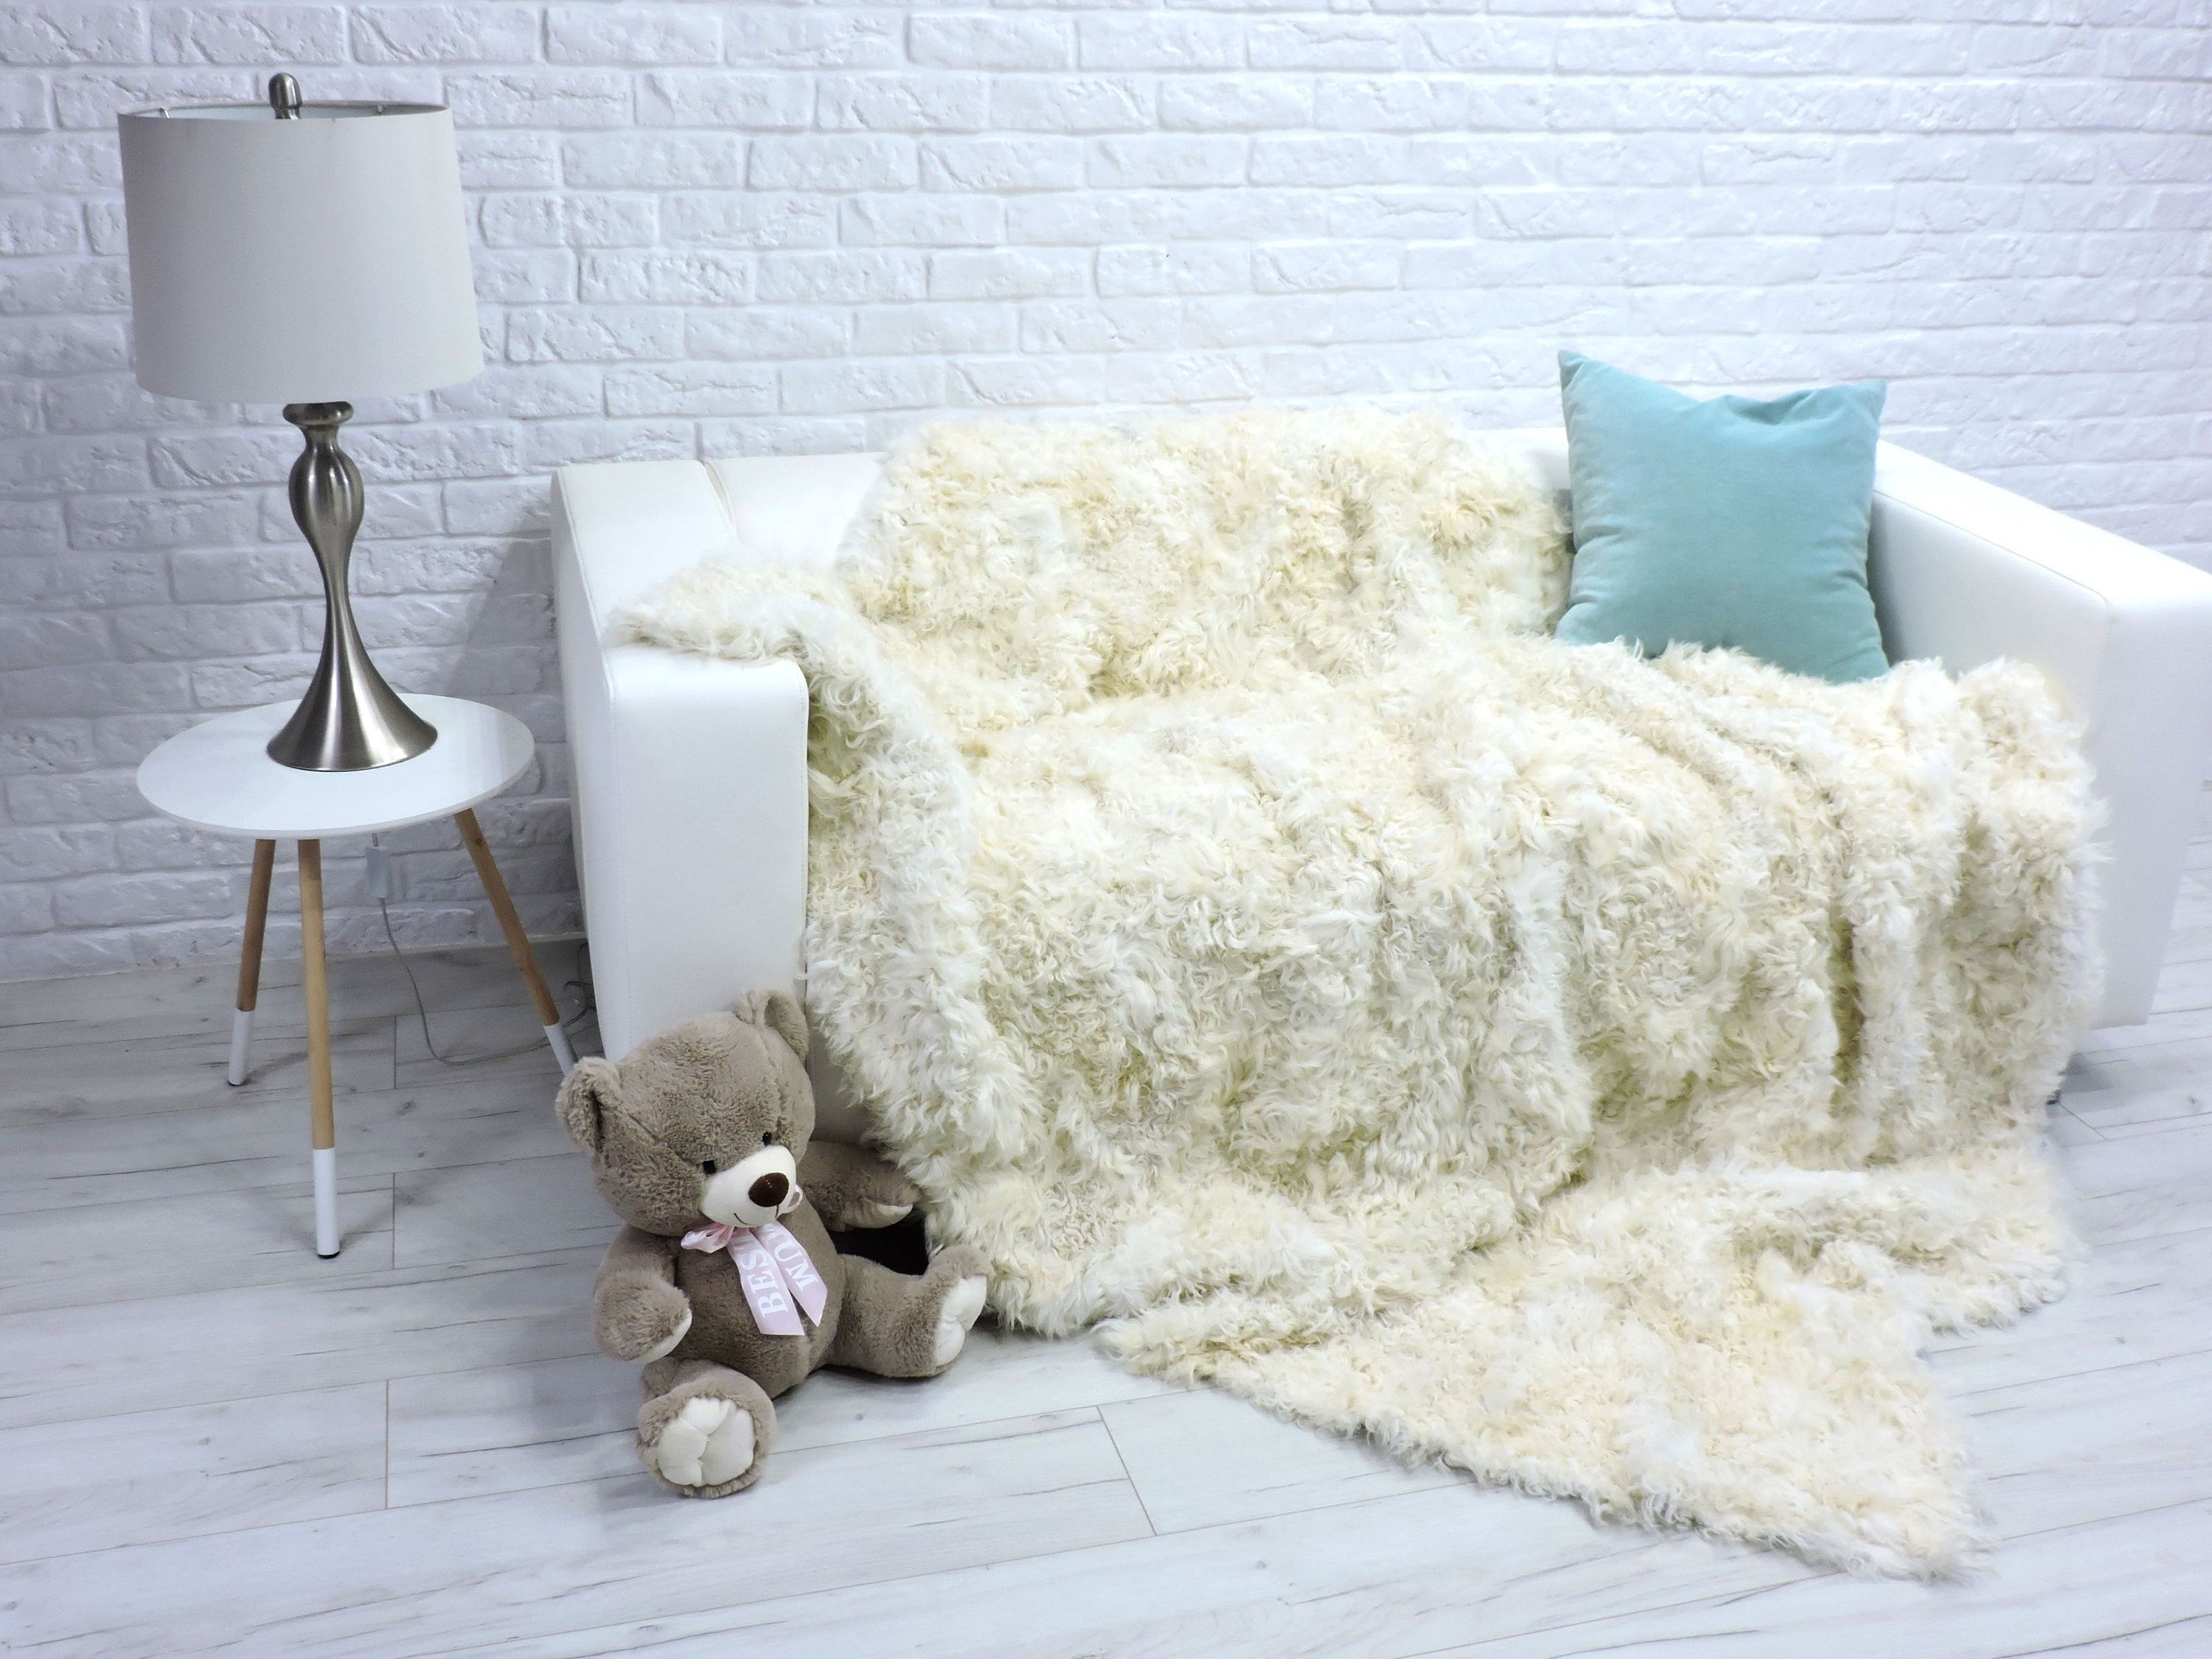 Luxury Toscana White Fur Blanket Fur Throw Sheepskin Sofa Cover Sofa Throw Genuine Leather Real Fur Rug Scandinavian Home Decor 286